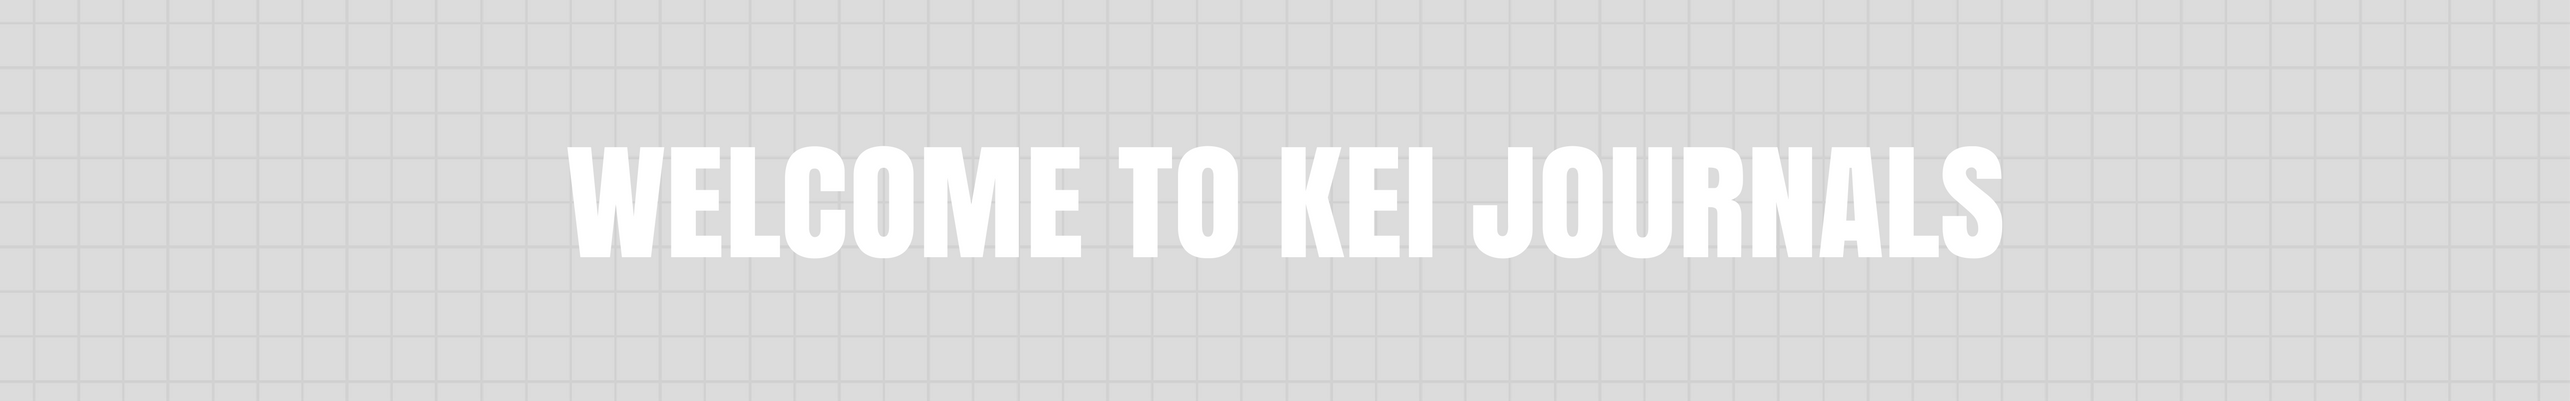 Welcome to KEI journals